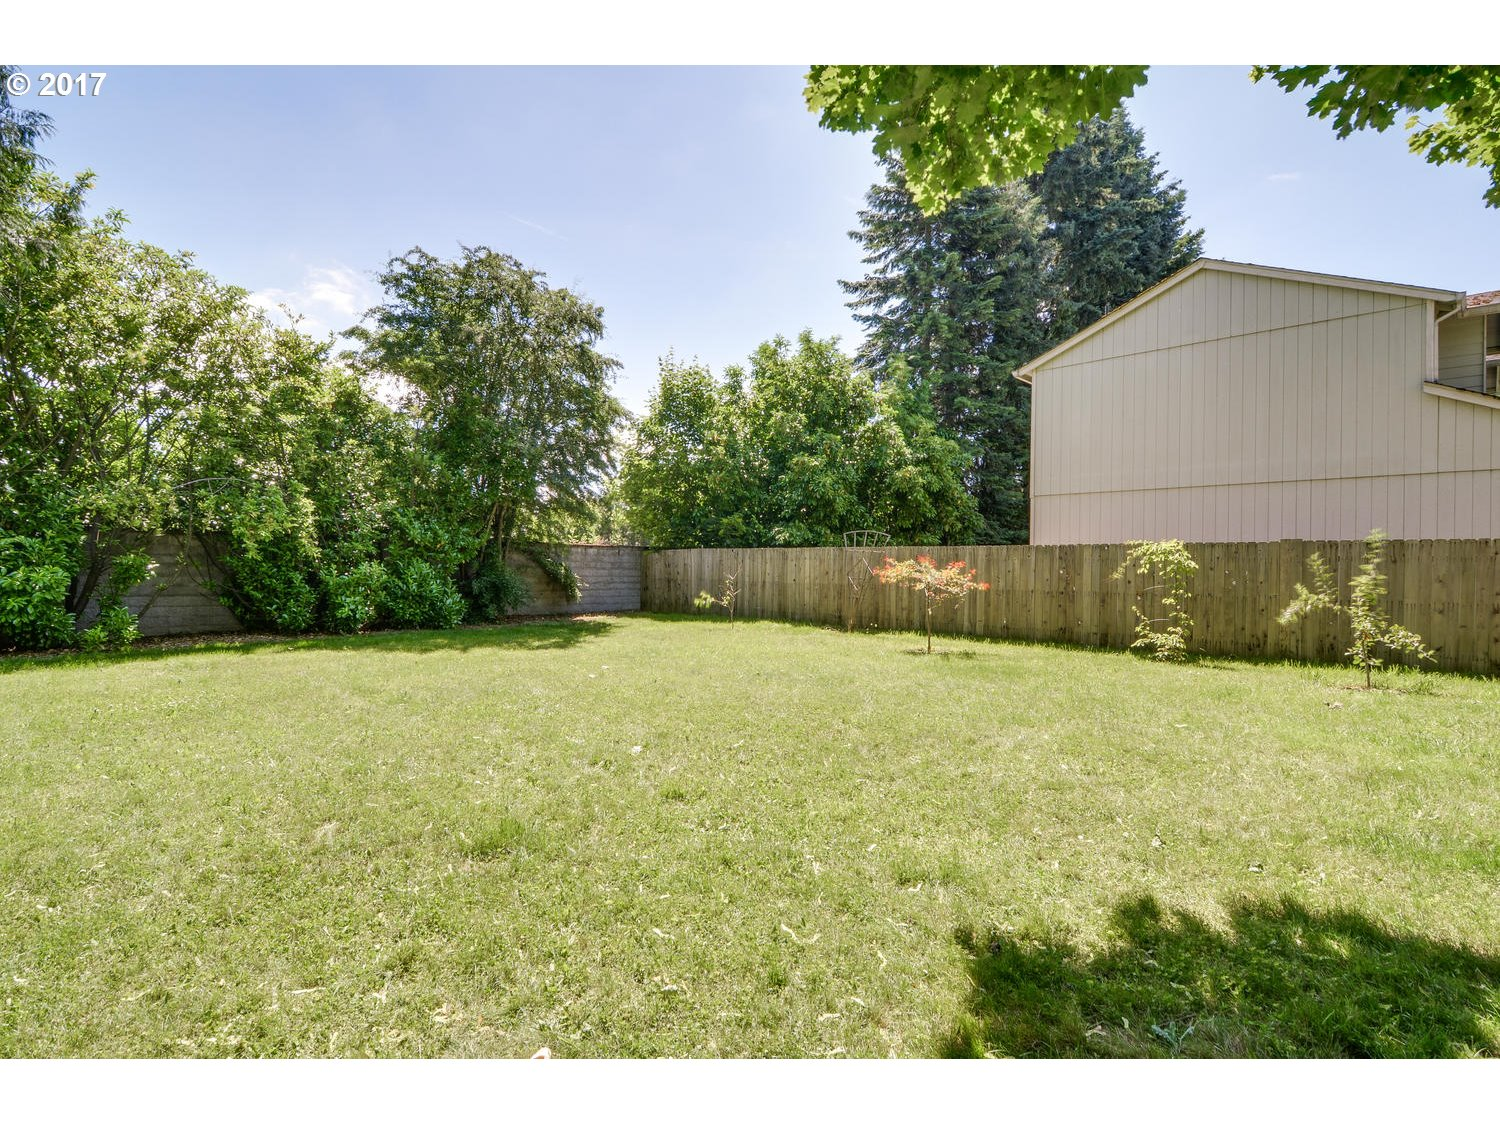 5535 NE 66TH AVE Vancouver, WA 98661 - MLS #: 17109544